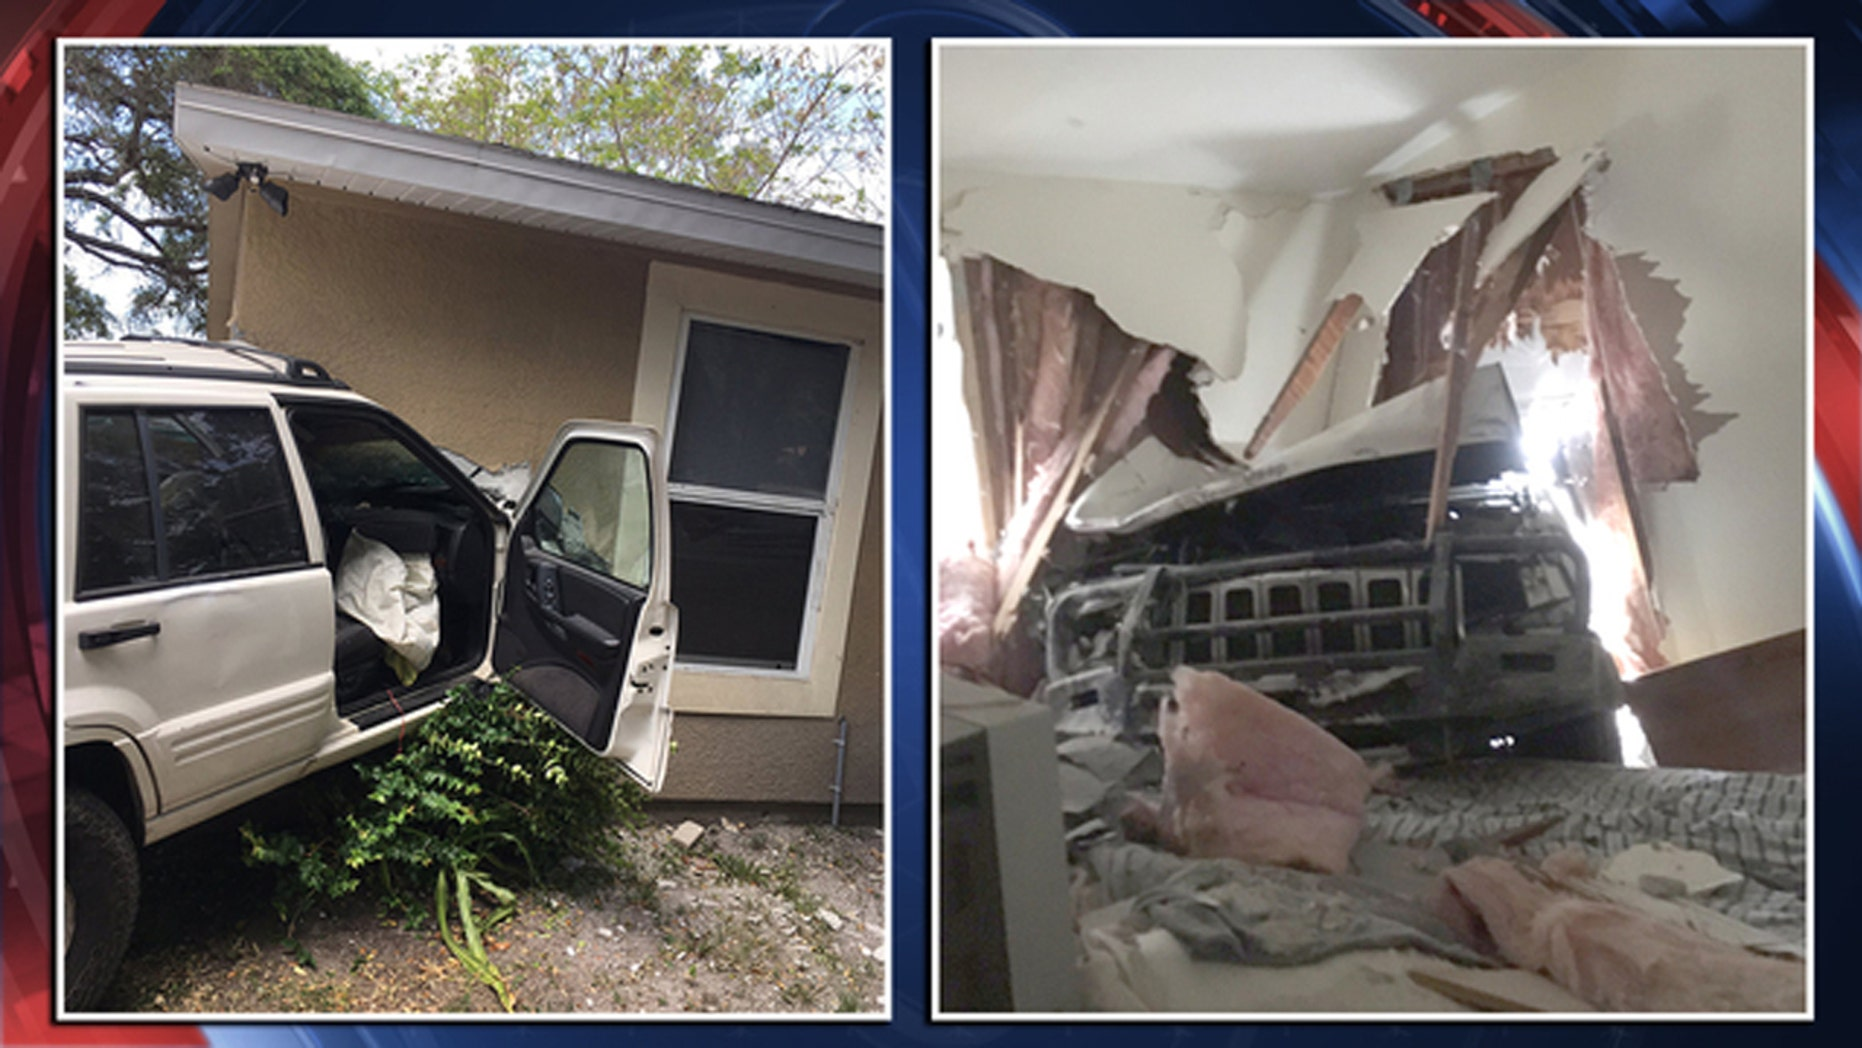 Two people are wanted by police after crashing a stolen vehicle into the side of a home, and then taking off.